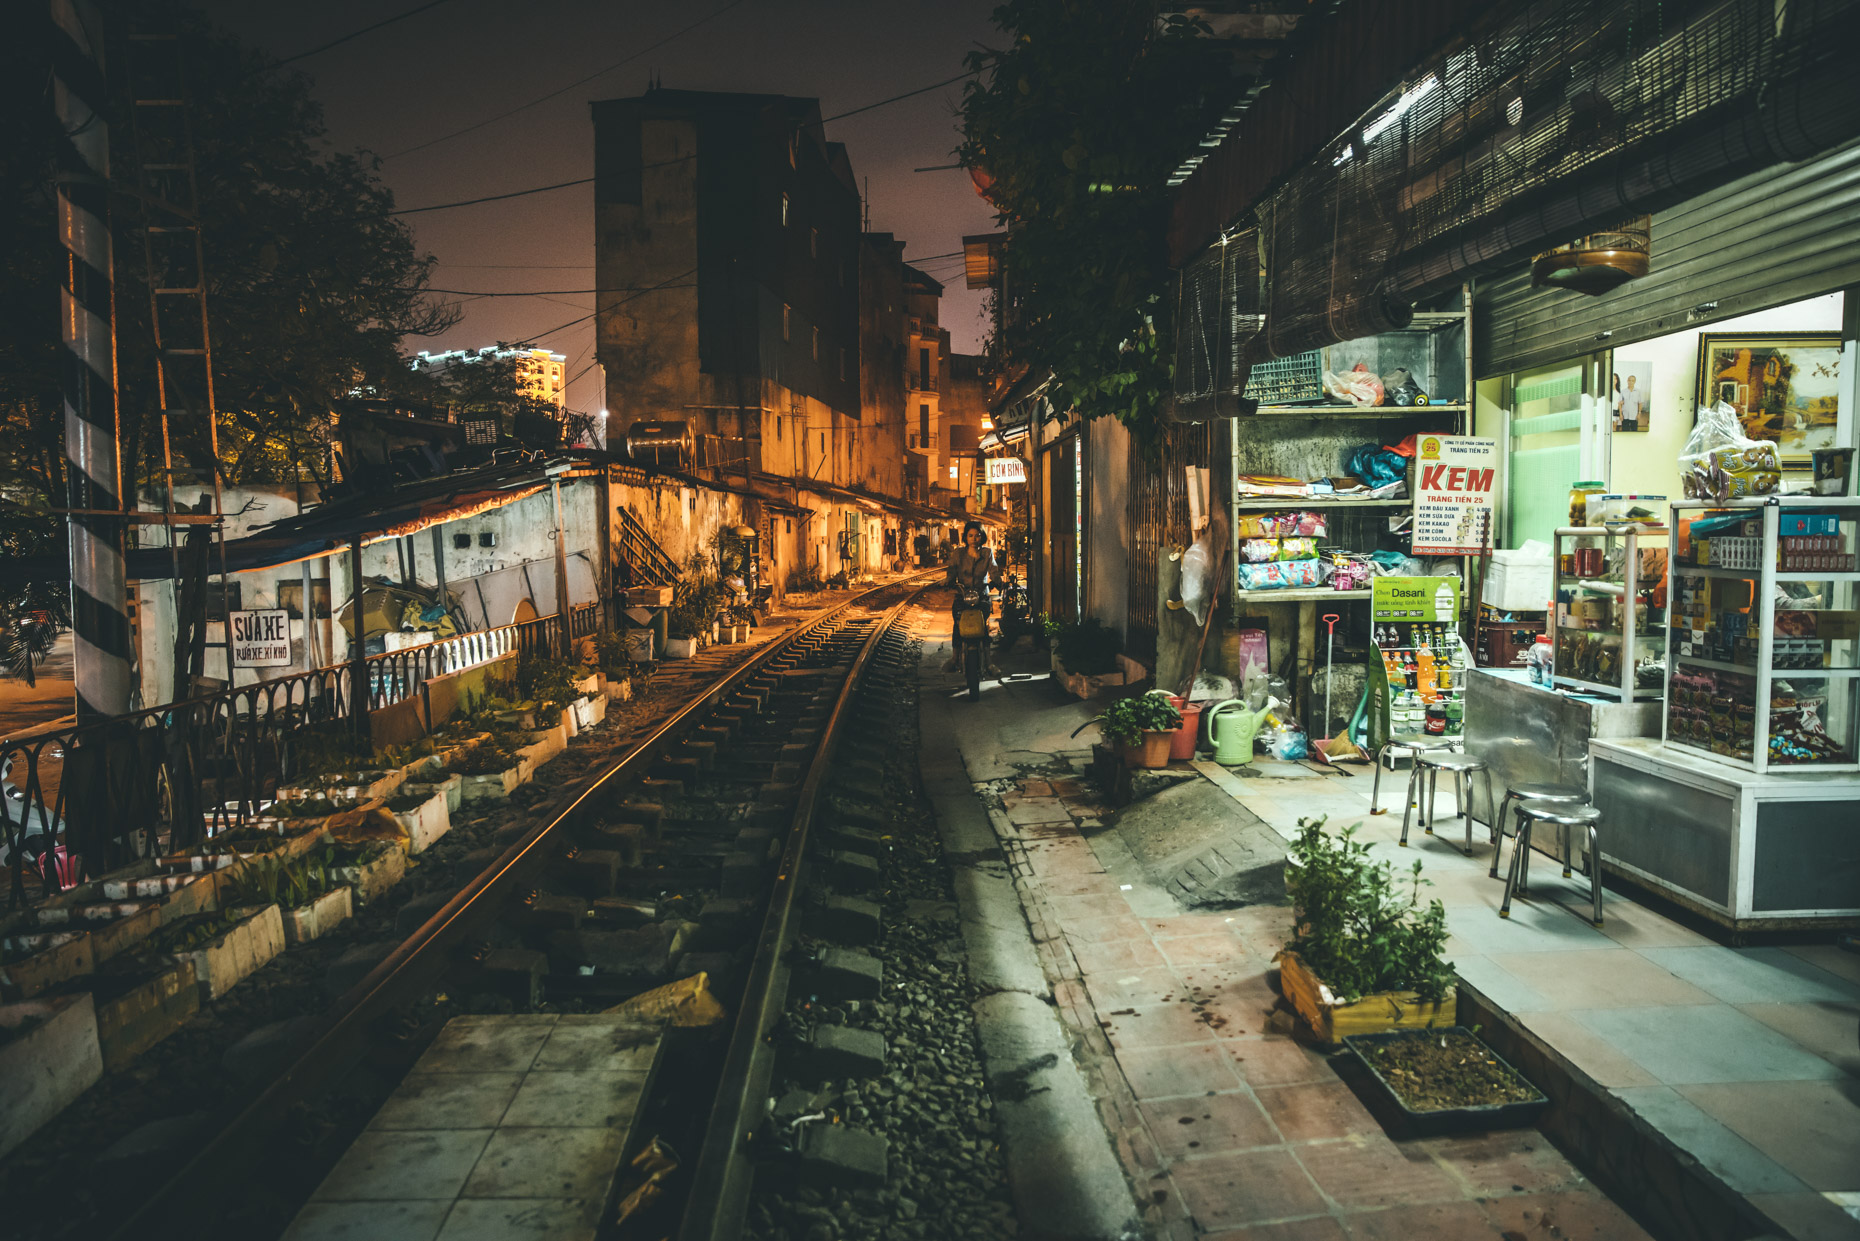 Nightscape of railroad tracks next to grocery store in Hanoi, Vietnam